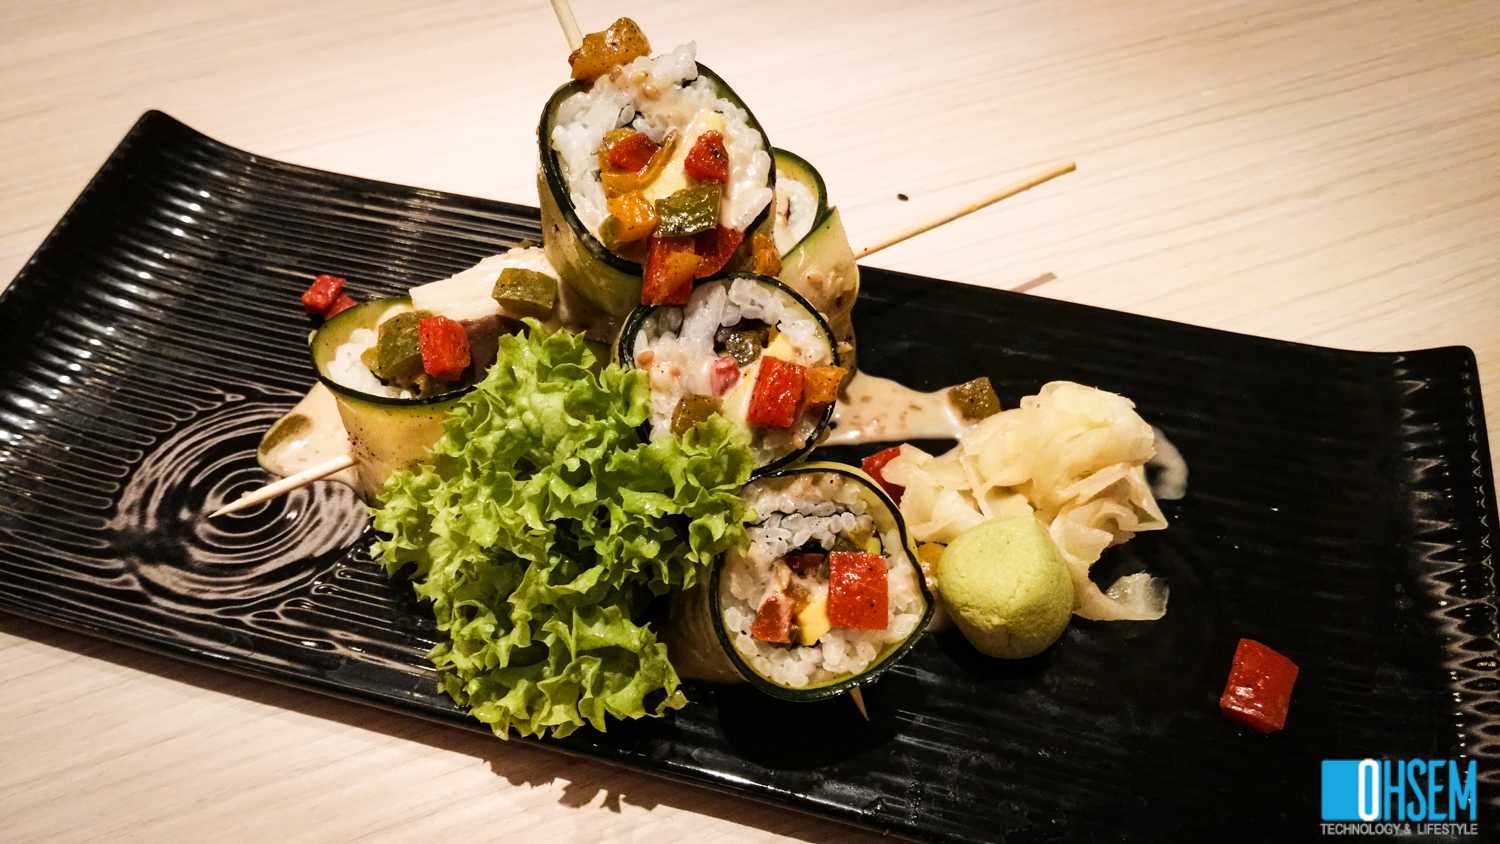 Sanoook - A Fusion of Thai and Japanese Food Like No Other